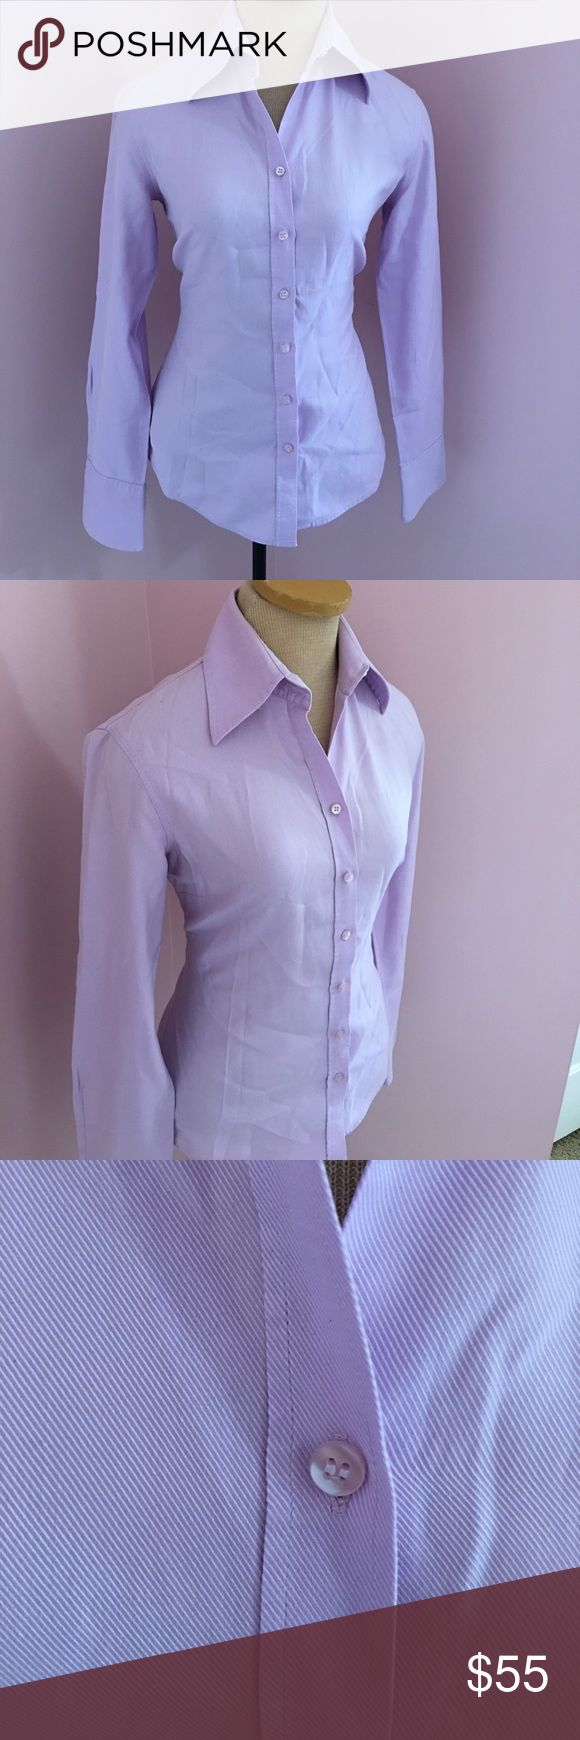 Mossimo Hawes&Curtis London Button down Shirt Mossimo Hawes&Curtis London Dress Shirt Button down size UK 8, this brand is an UK Brand of Mossimo . It's very high quality. Beautiful Shirt and color is Lavender. Worn once for an event. Size is small I'd say in USA size = 4-6 women. Offers welcome and all purchases receive free gift 🎁! mossimo Hawes&Crutis UK Tops Button Down Shirts